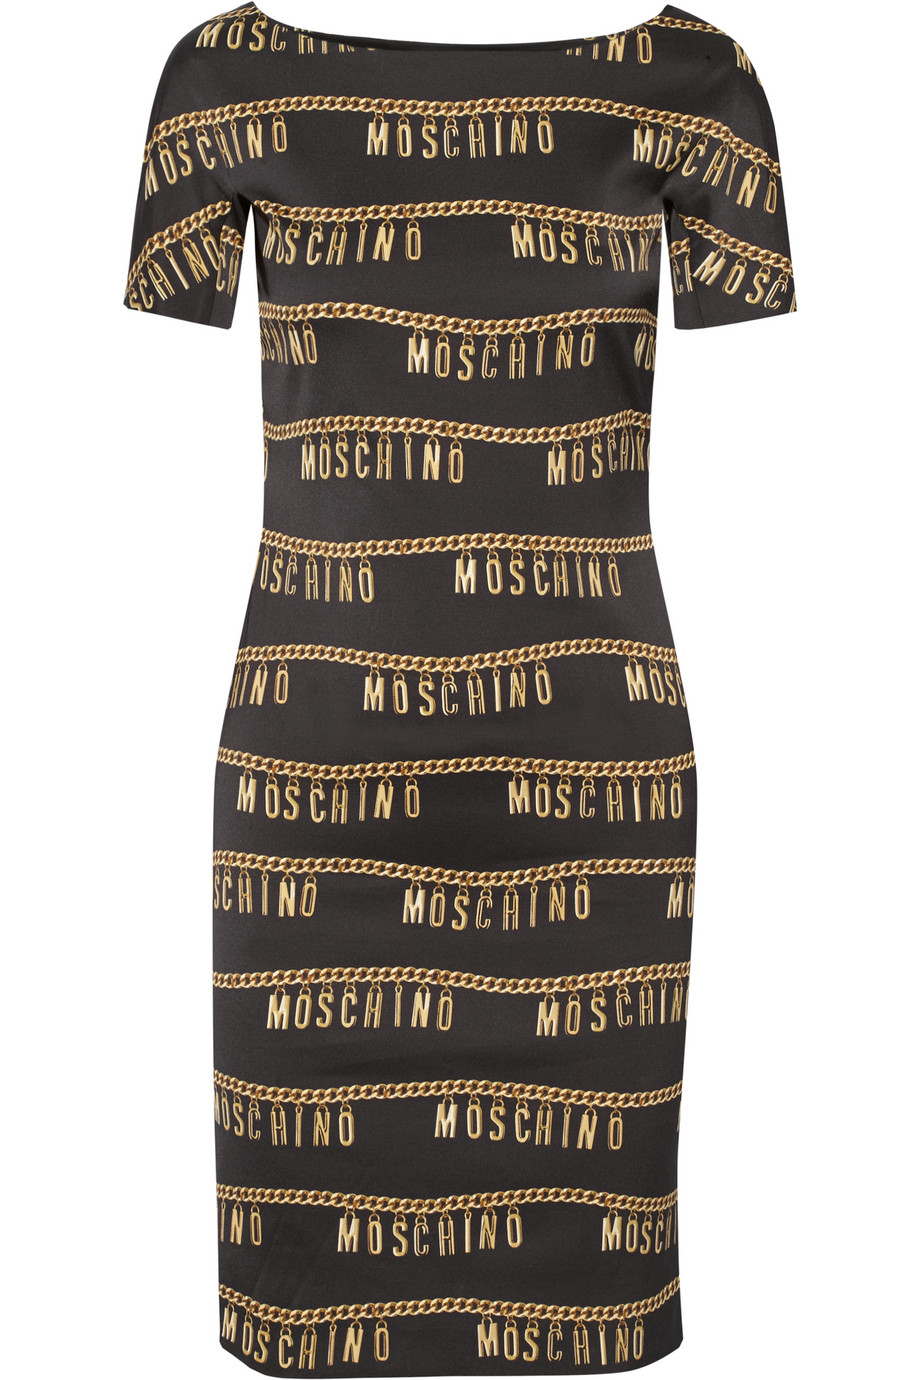 Moschino Printed Stretch-Crepe Dress, Black, Women's - Printed, Size: 48